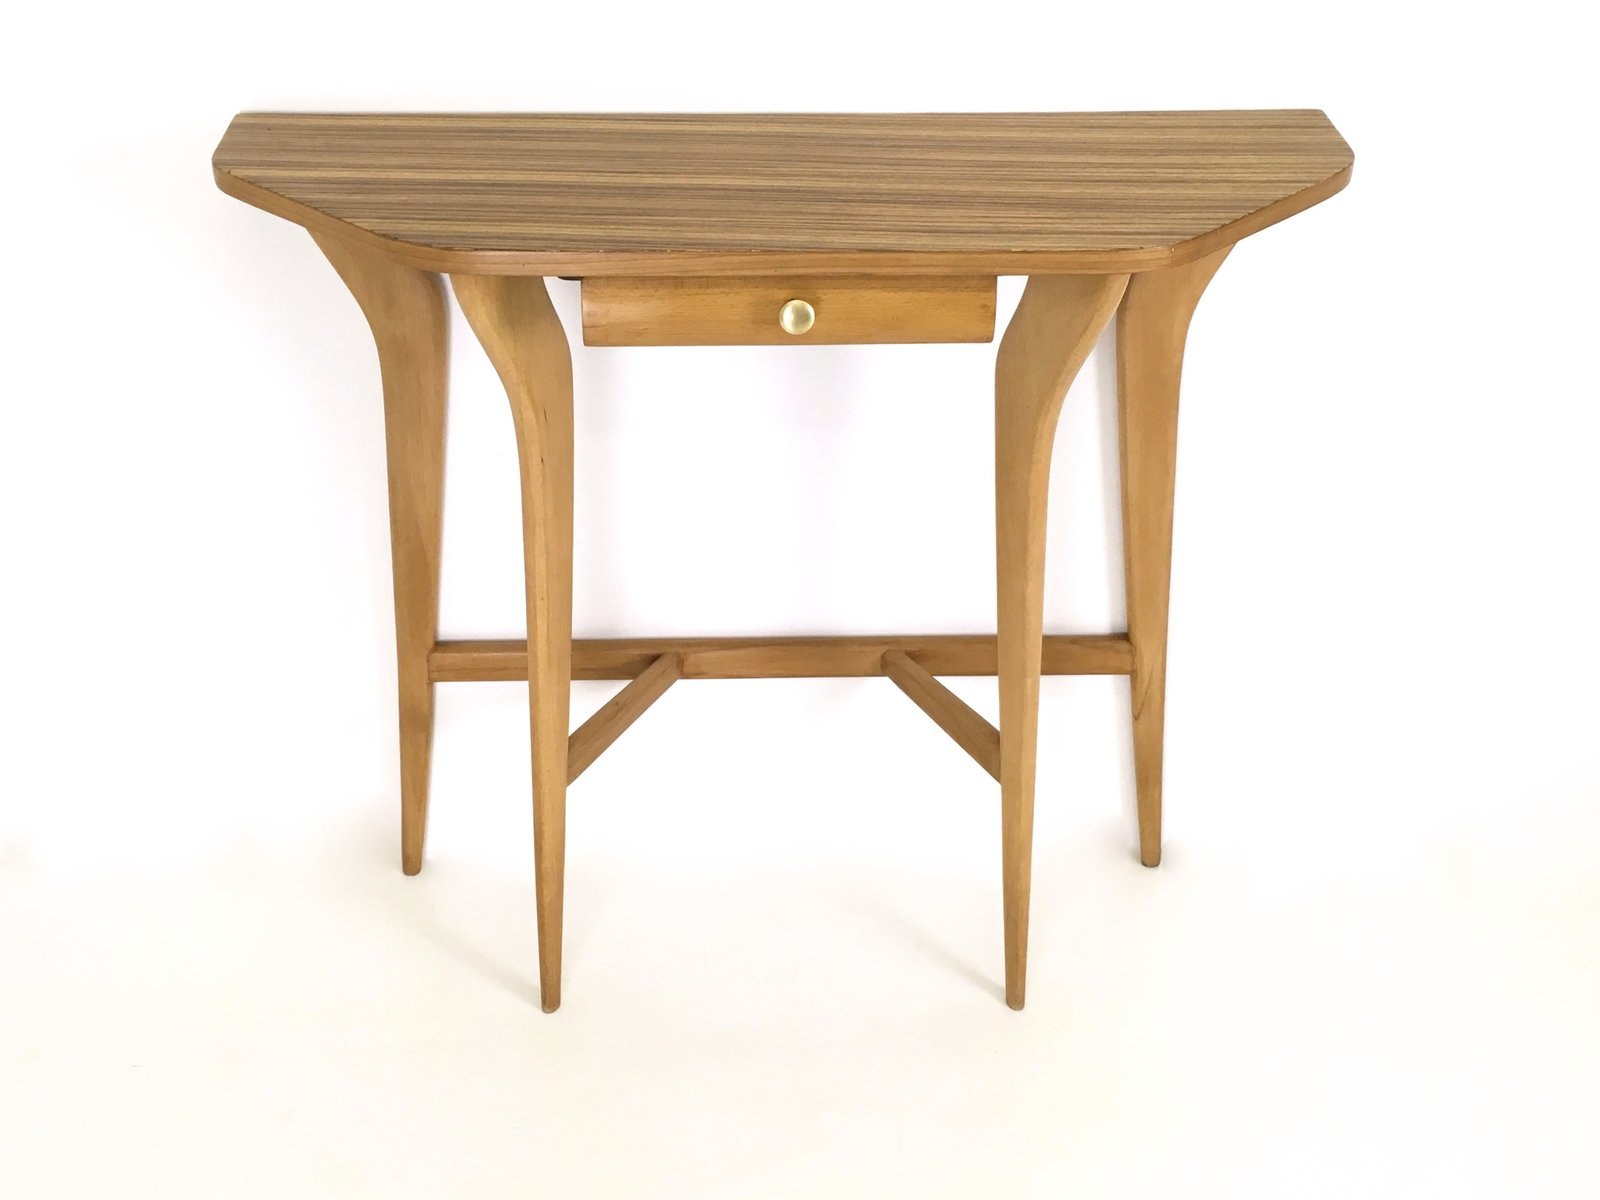 Maple and zebrawood console table 1950s for sale at pamono maple and zebrawood console table 1950s geotapseo Image collections